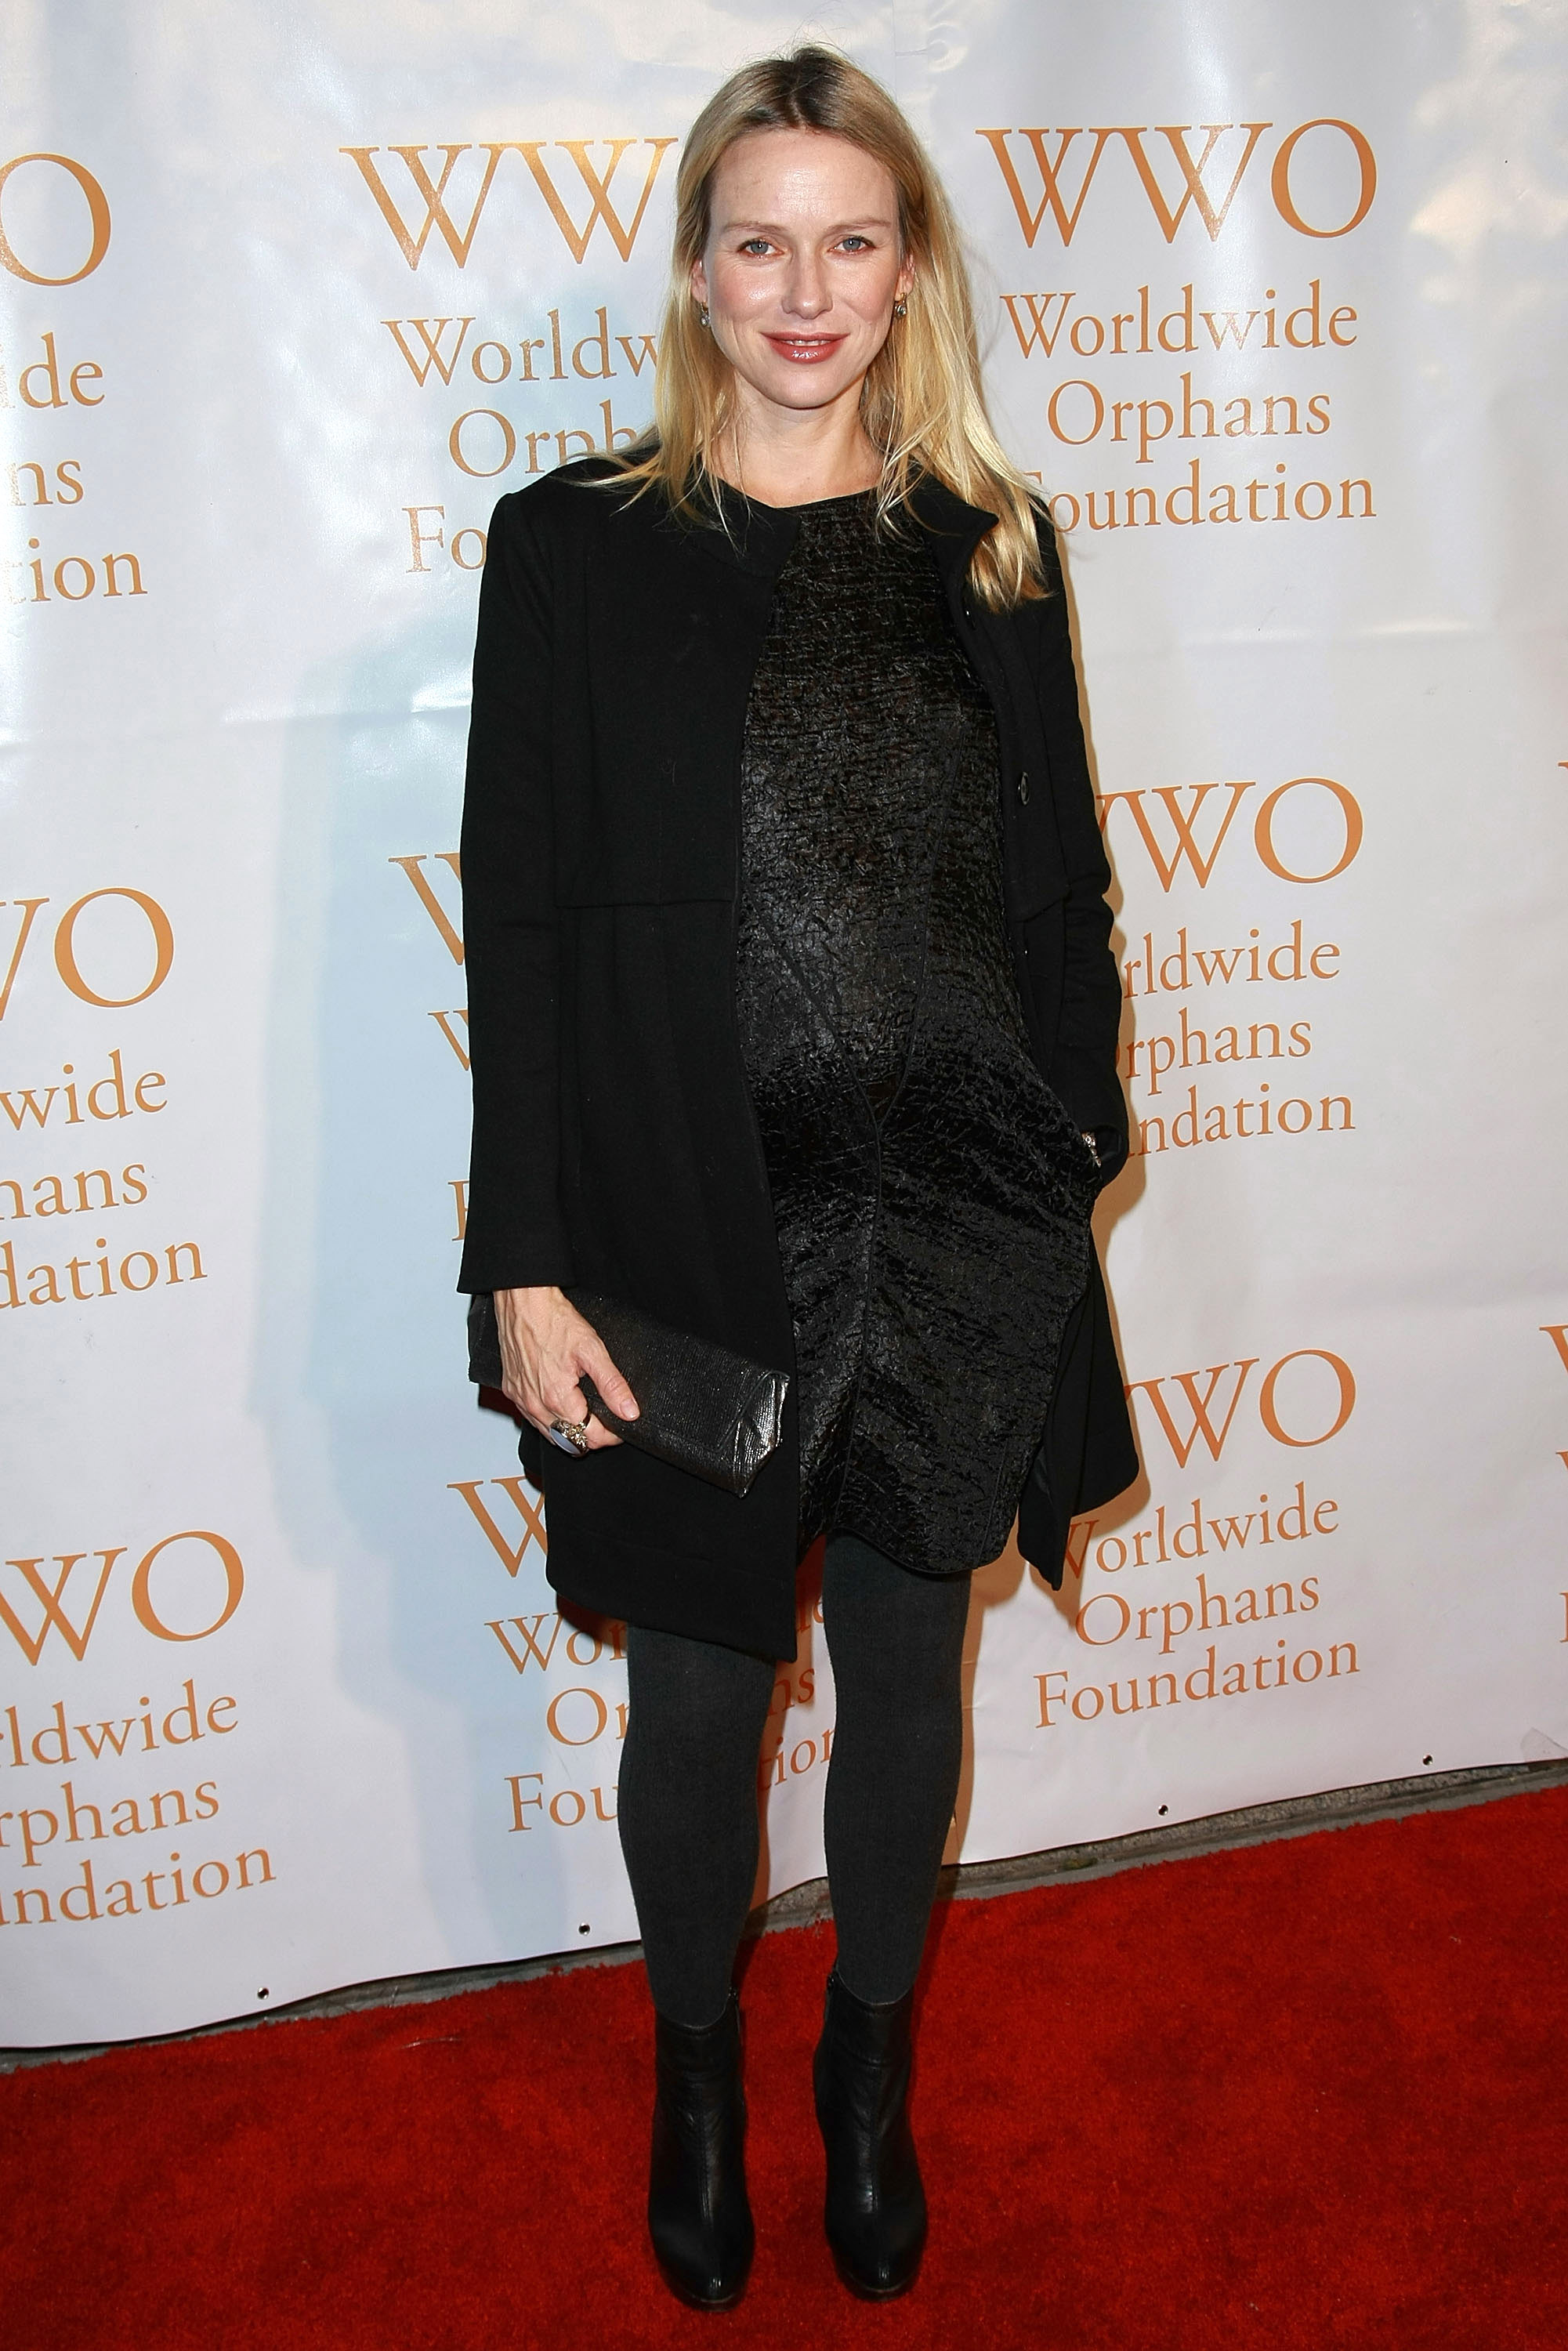 81719_Celebutopia-Naomi_Watts-4th_Annual_Worldwide_Orphans_Foundation_benefit_gala-02_122_538lo.jpg